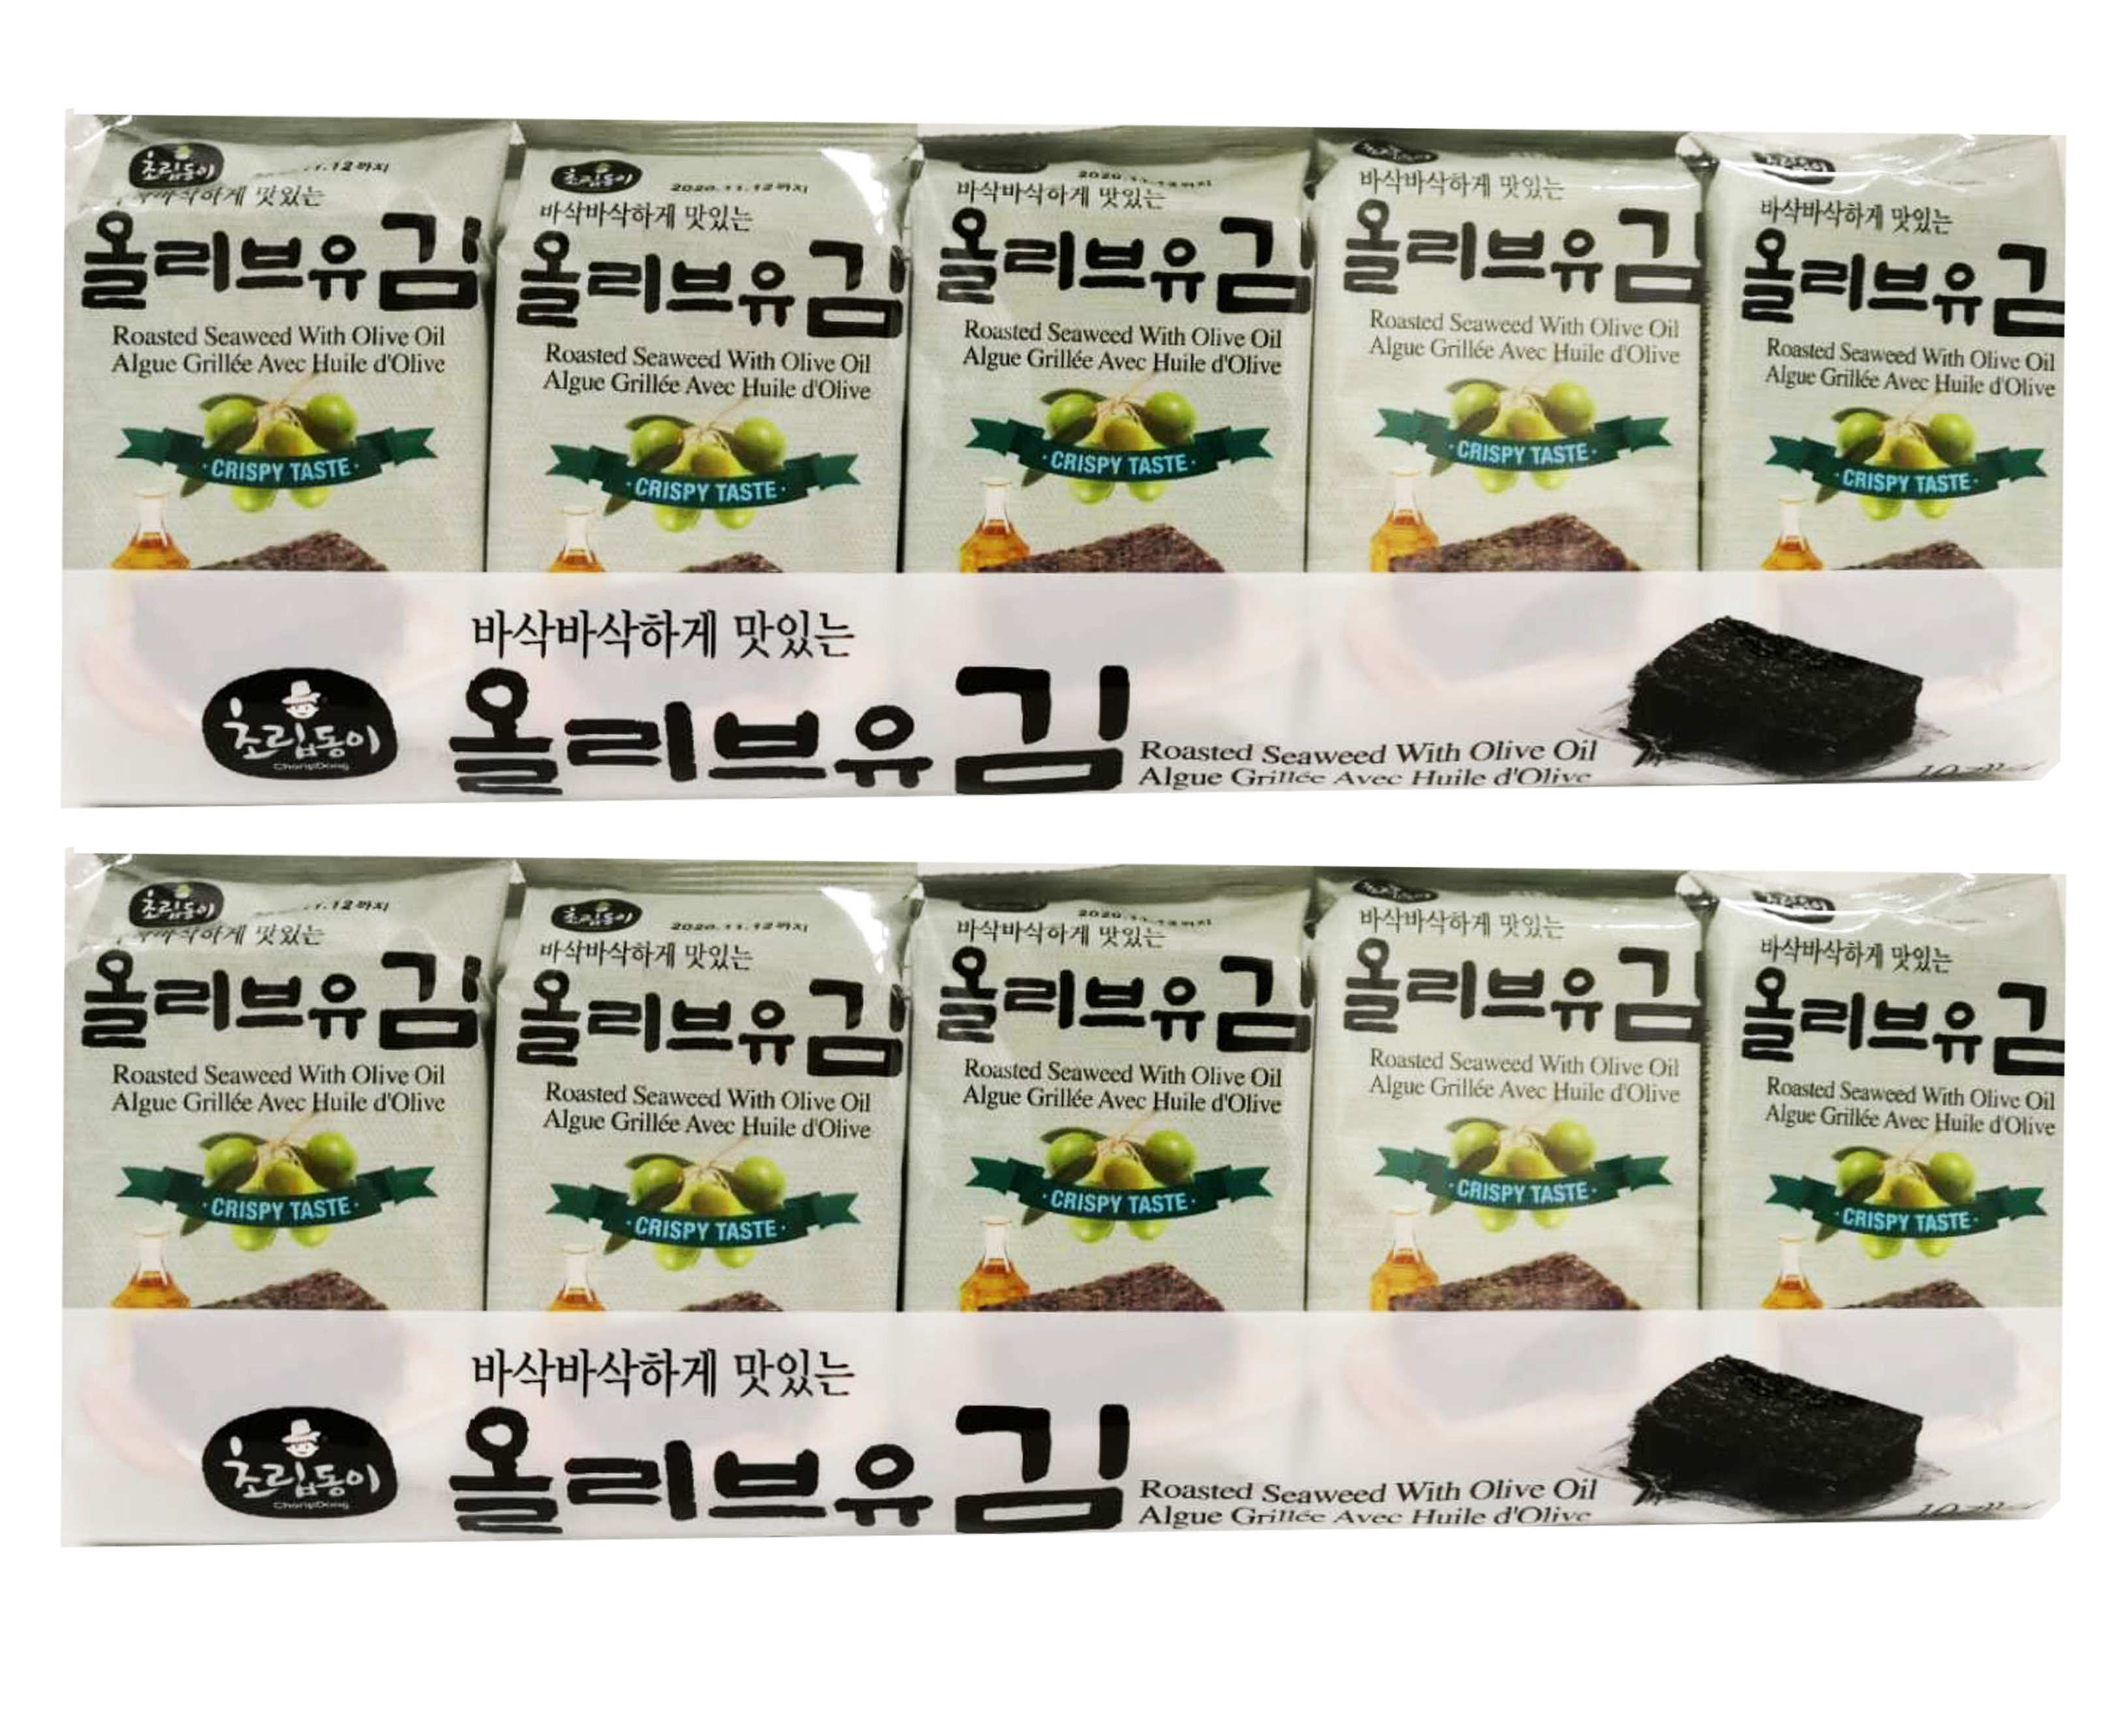 Roasted Seaweed With Olive Oil 5gx10x2